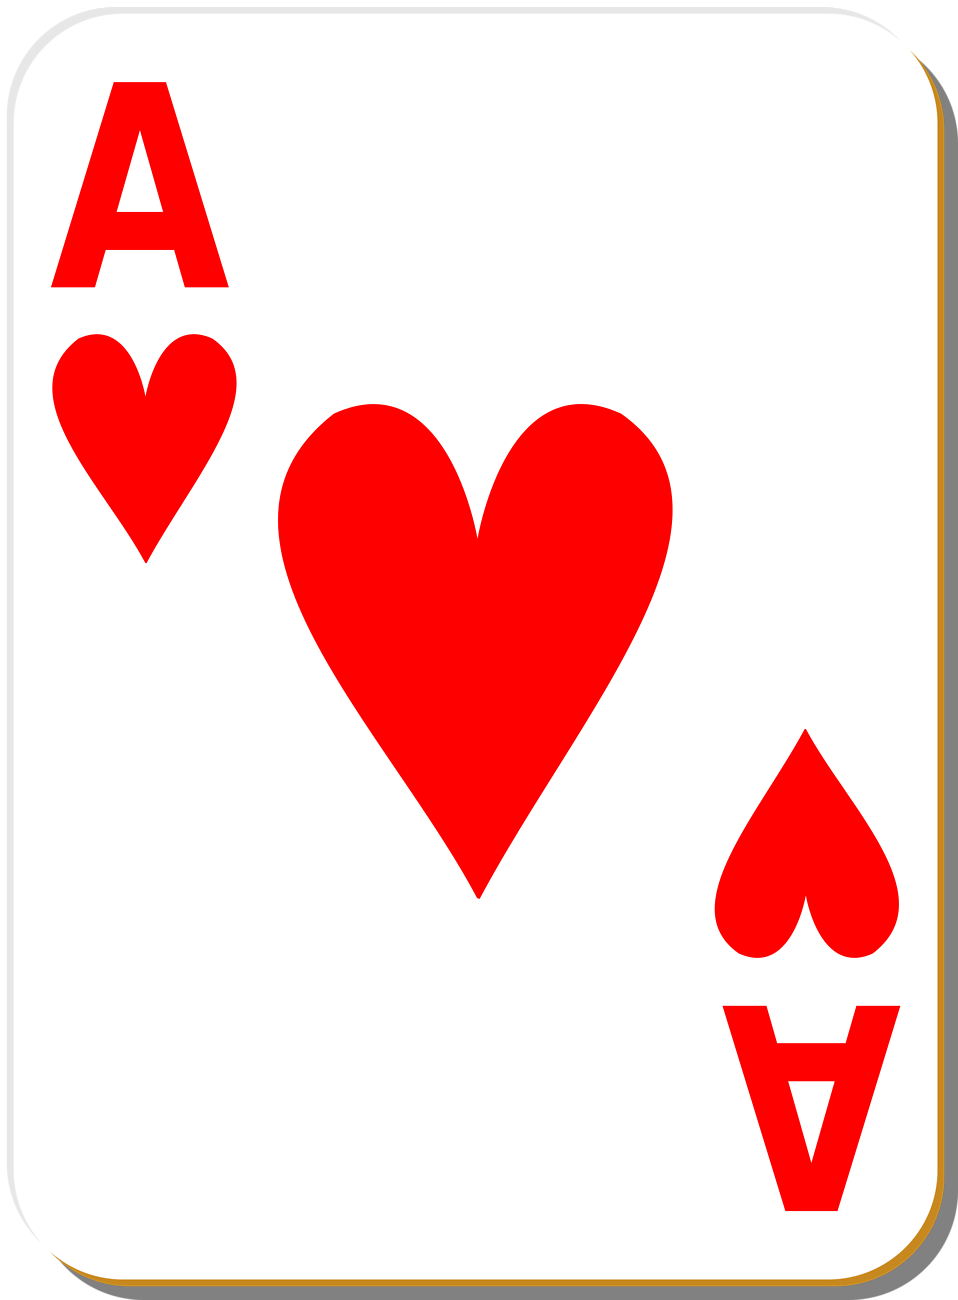 hight resolution of ace heart playing card clip art